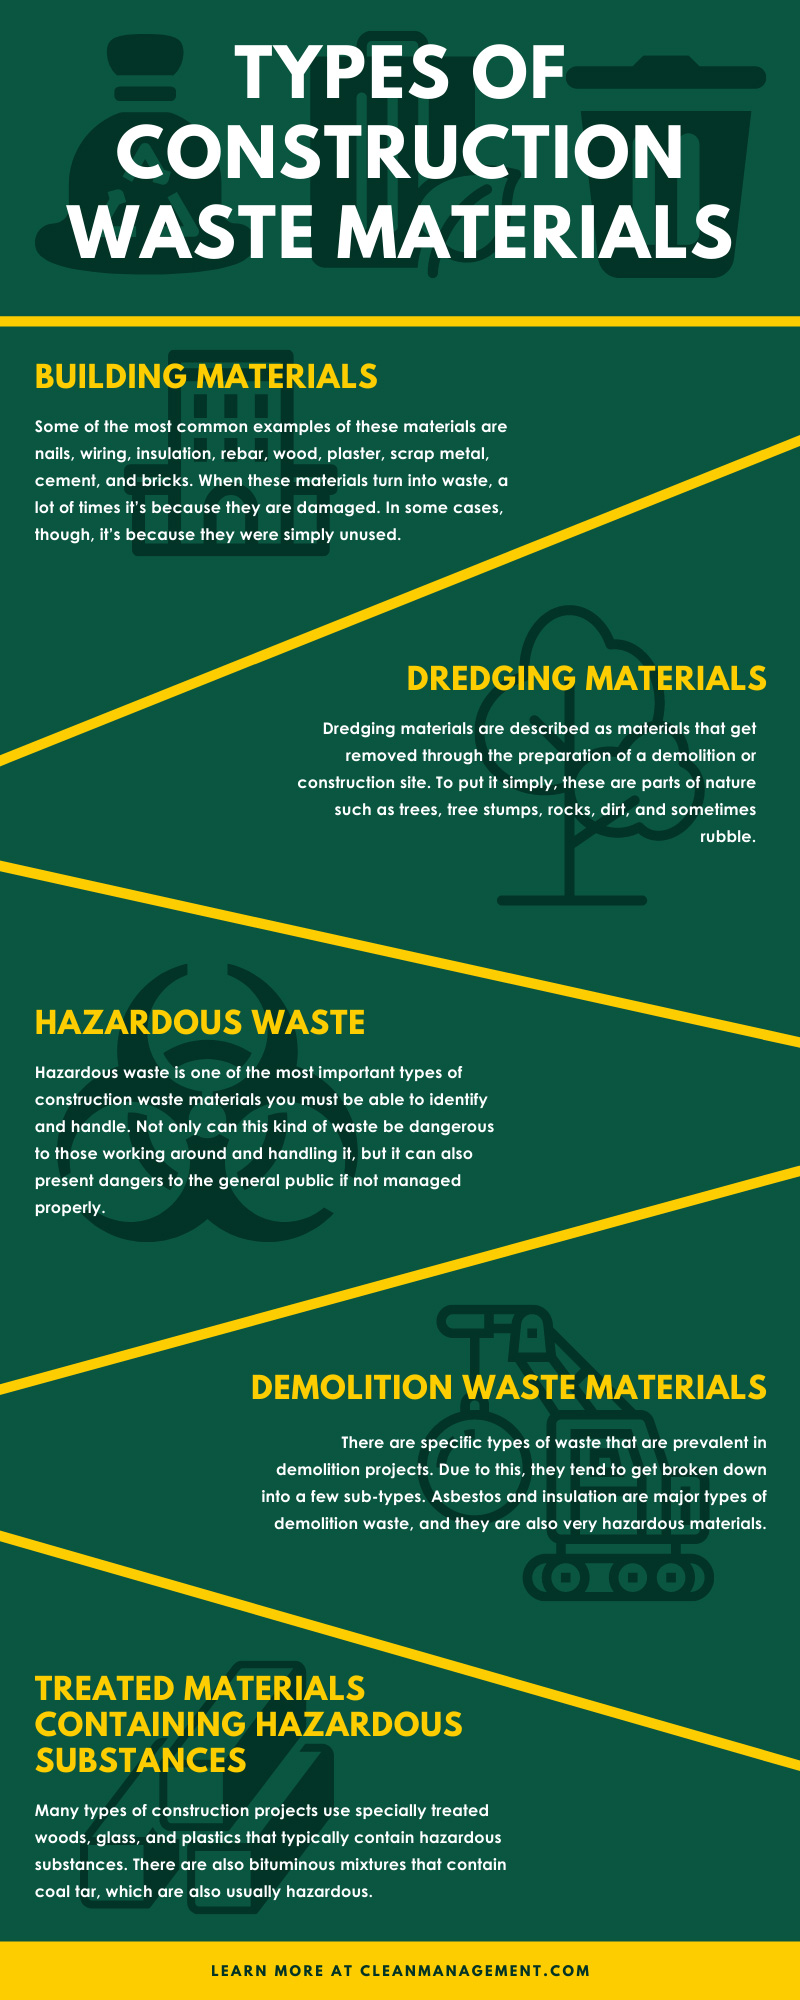 Types of Construction Waste Materials